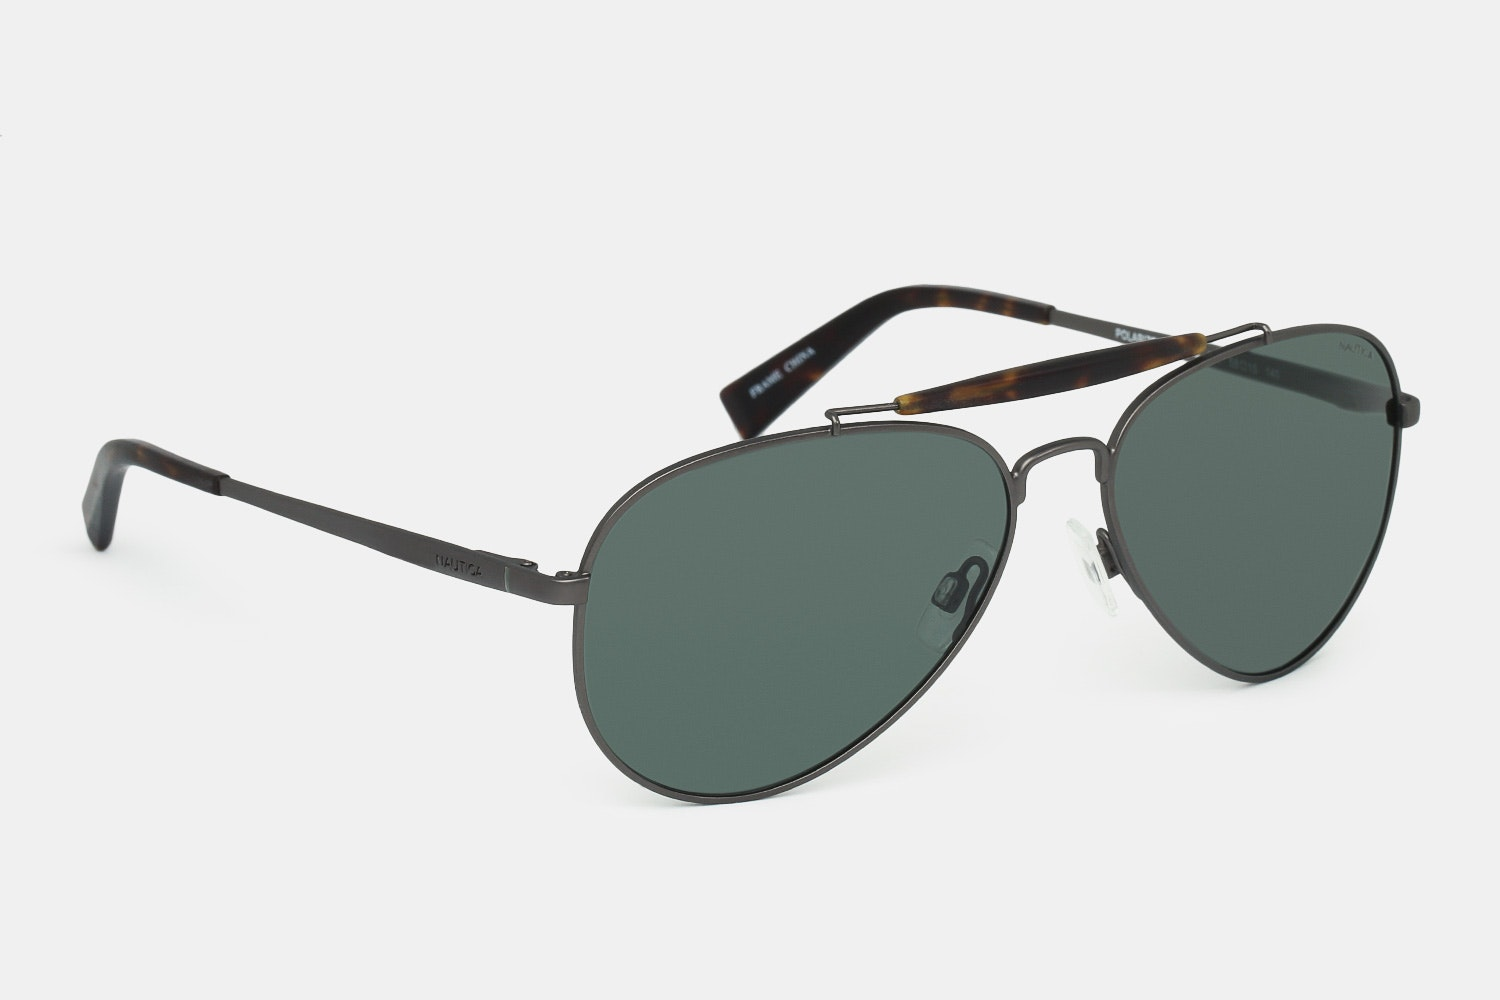 Nautica Polarized Aviator Sunglasses